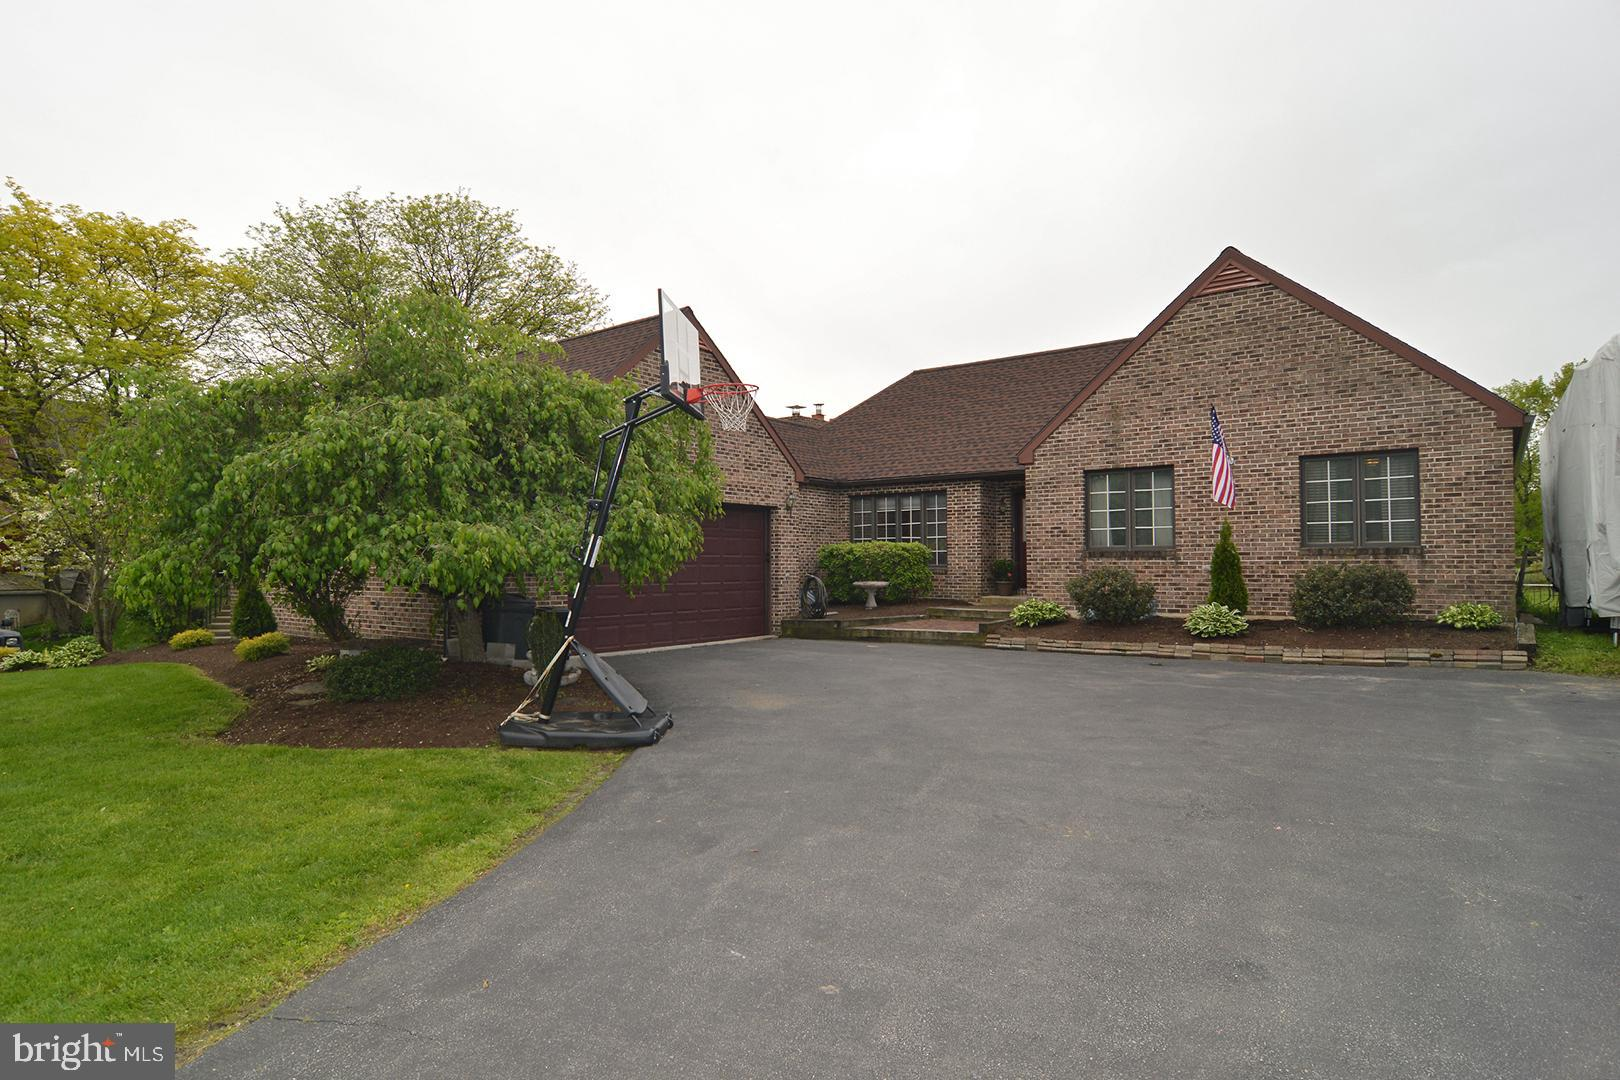 652 OLD STATE ROAD, OLEY, PA 19547